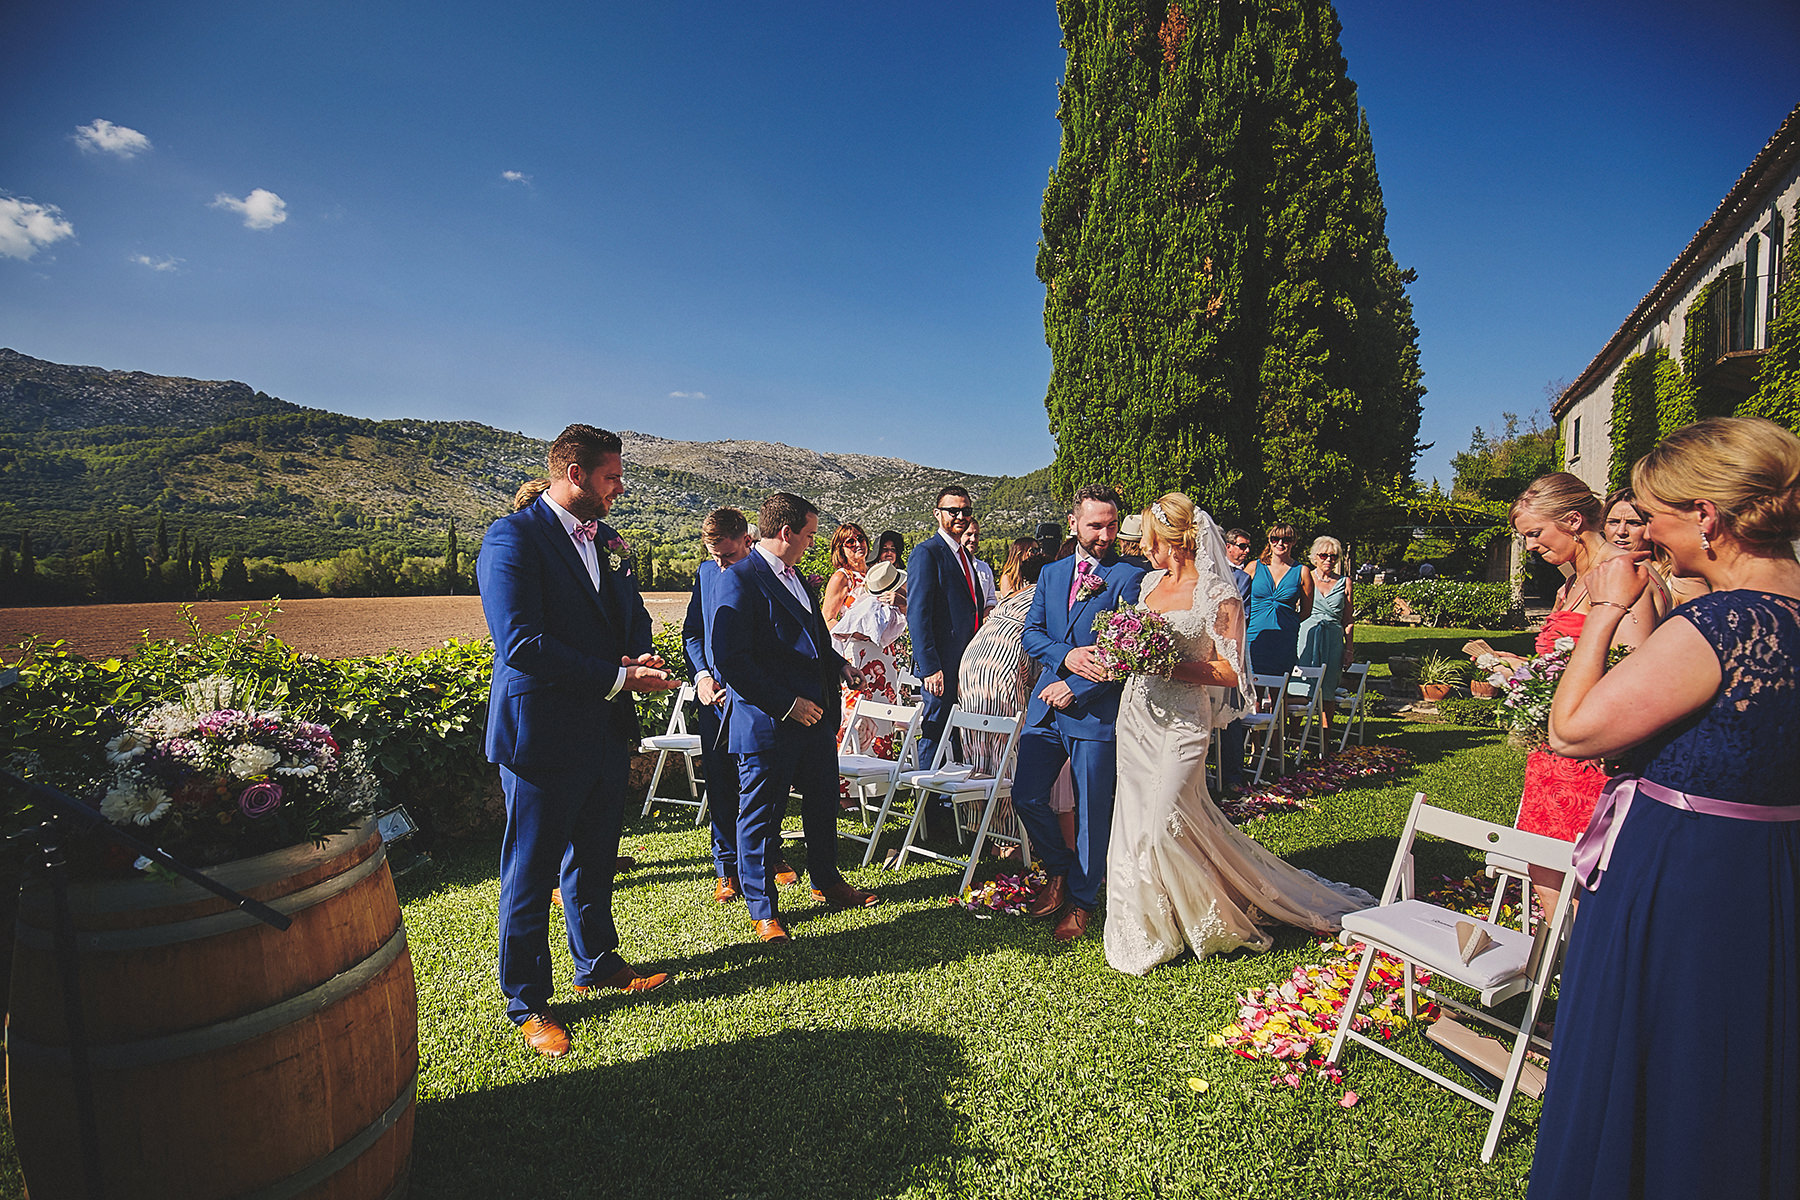 144 - Destination wedding in a magical Mallorca